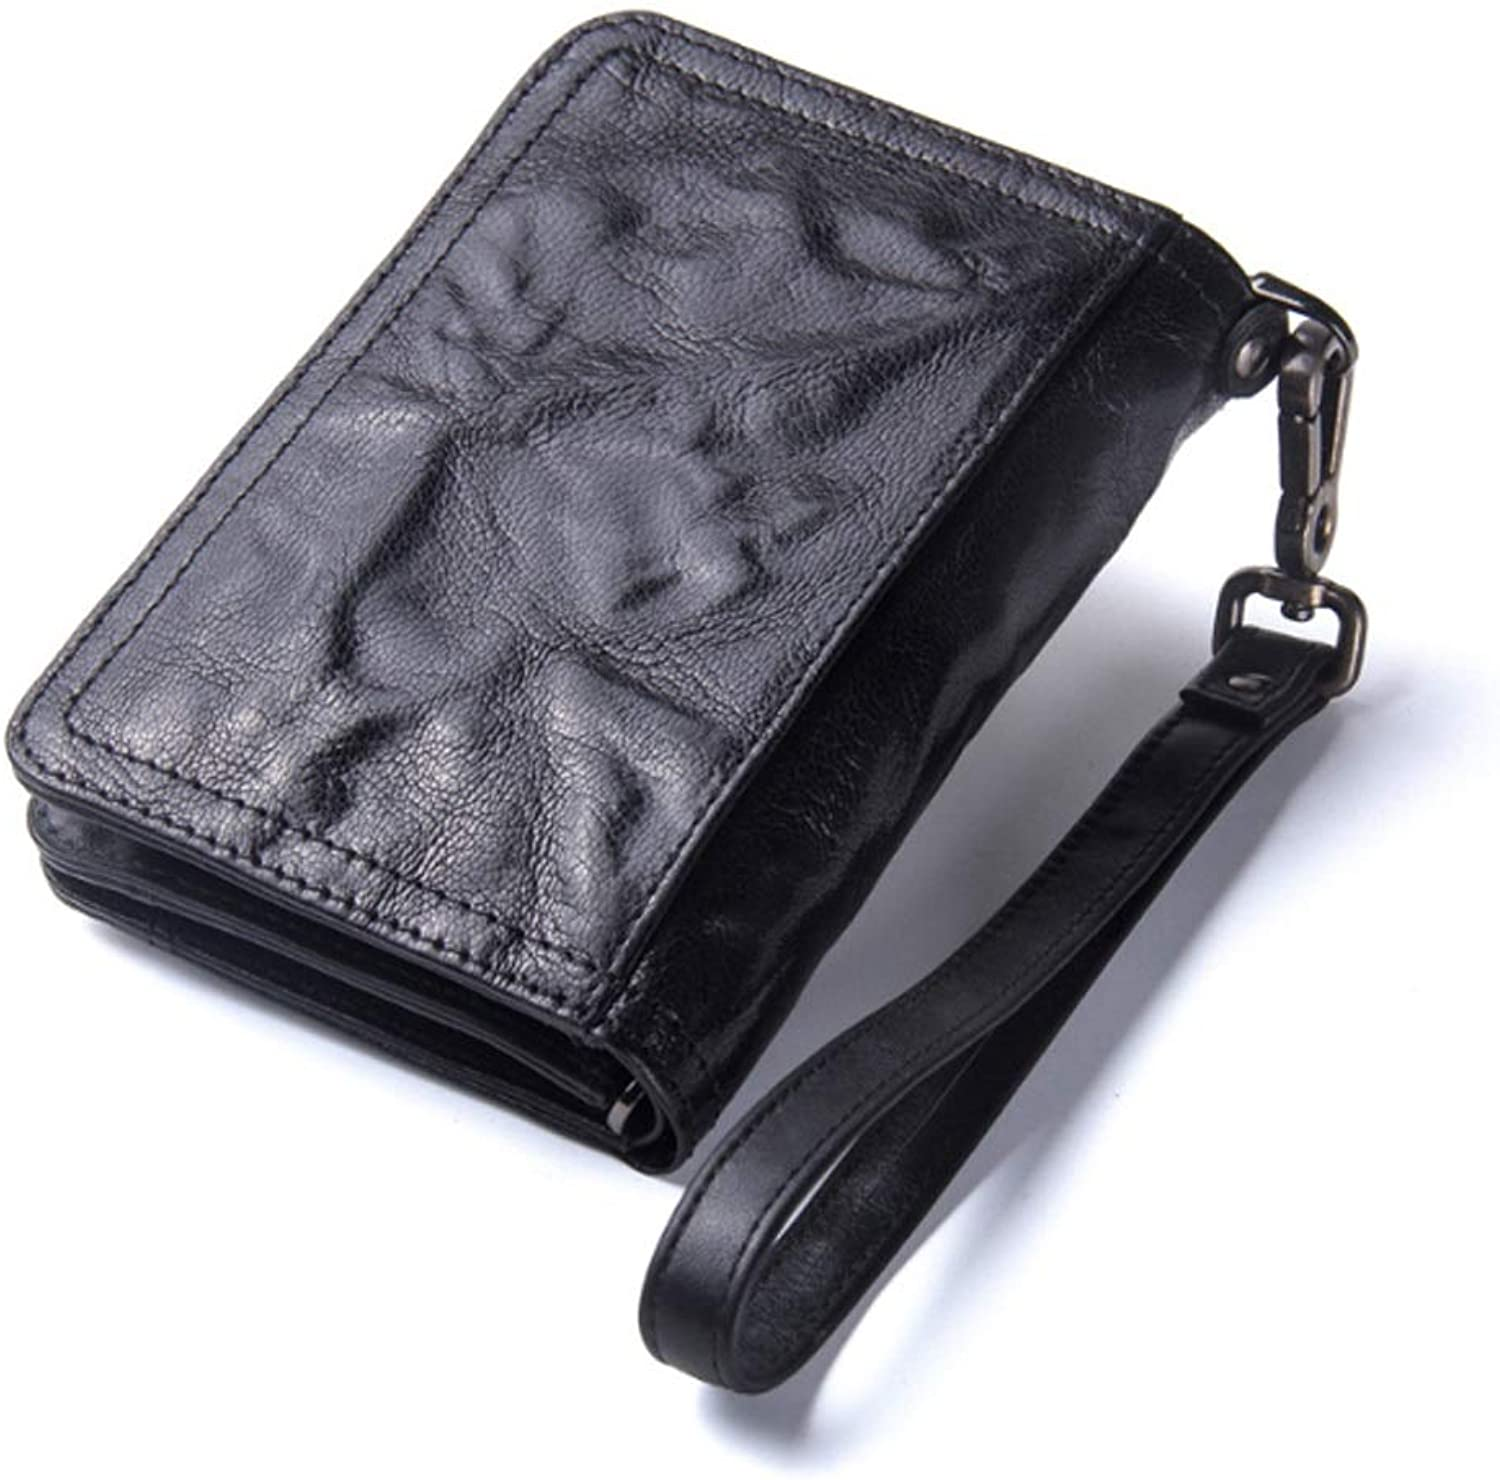 Fashion Wallet, New Men's Wallet MultiFunction Leather Purse with Wrist Strap Short Top Layer Leather Clutch